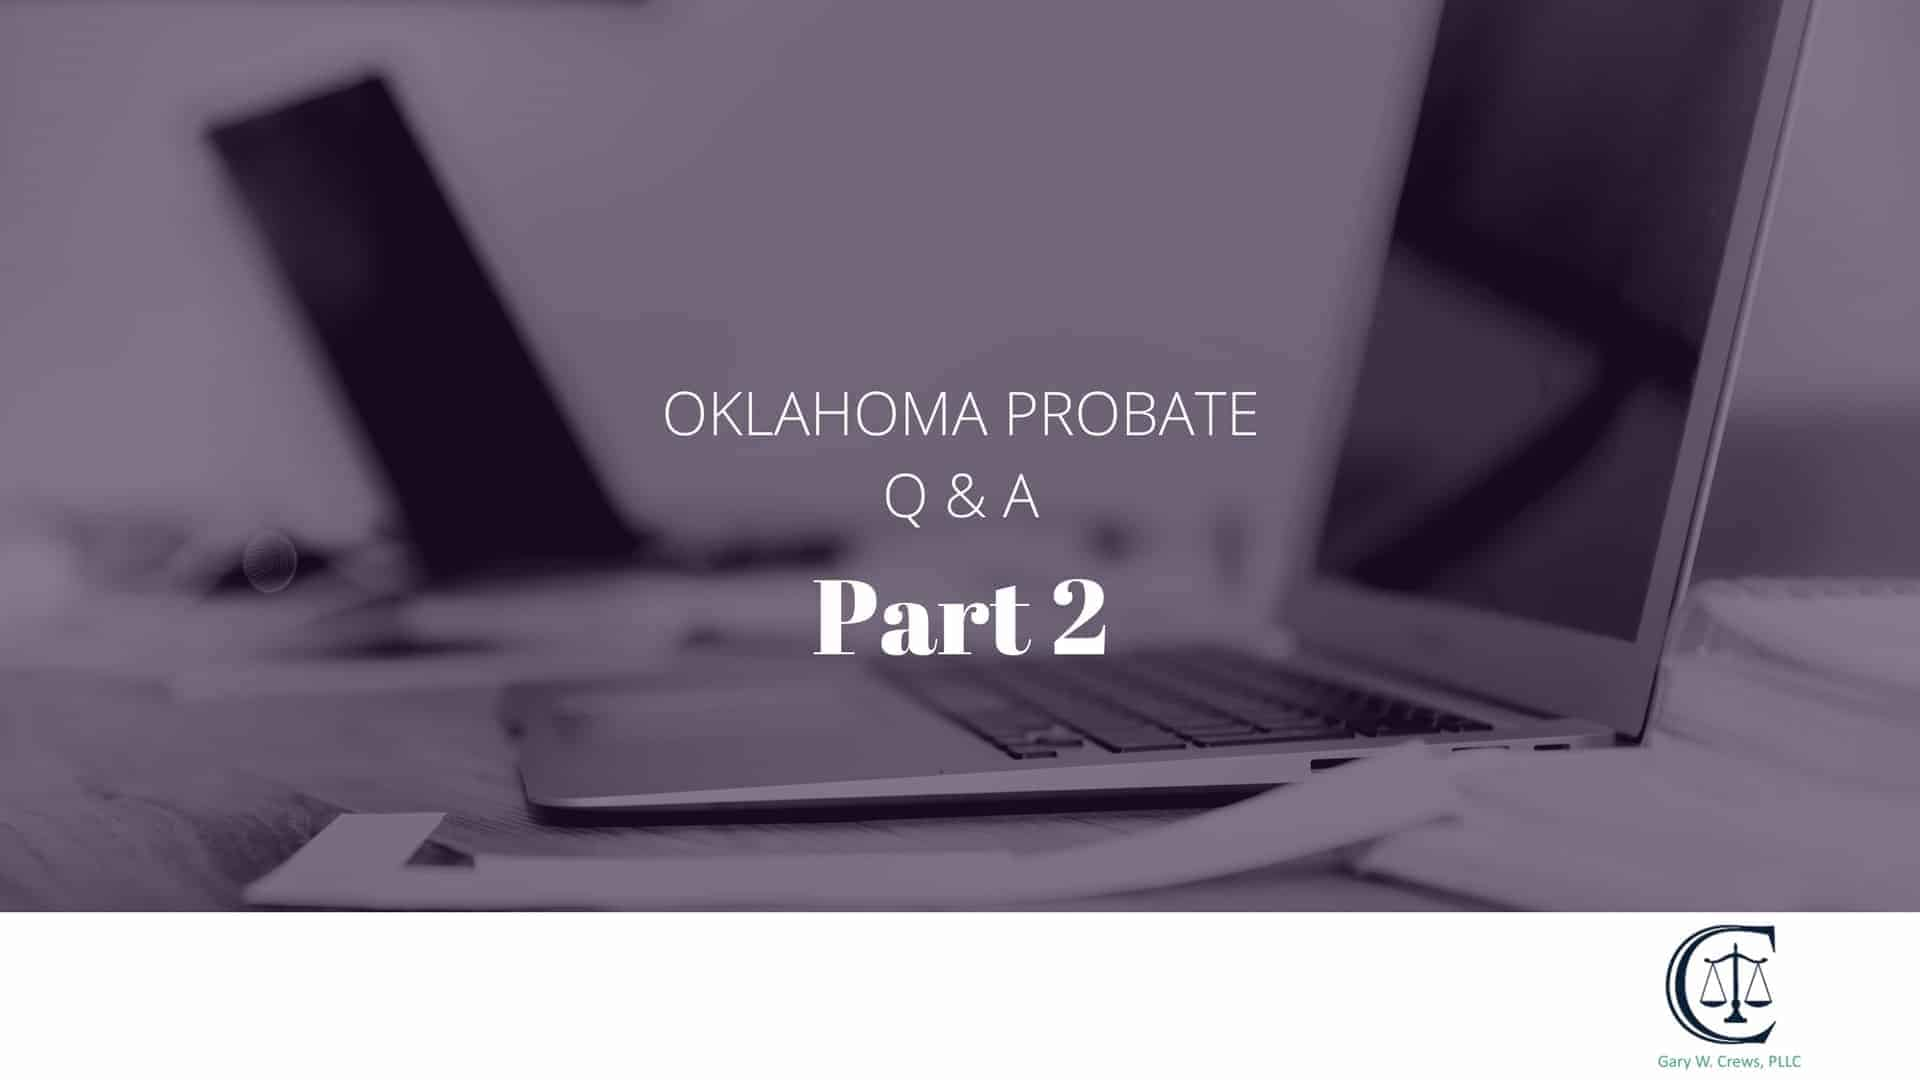 oklahoma probate law q & a part 2 - probate Qa 3 - Oklahoma Probate Law Q & A Part 2